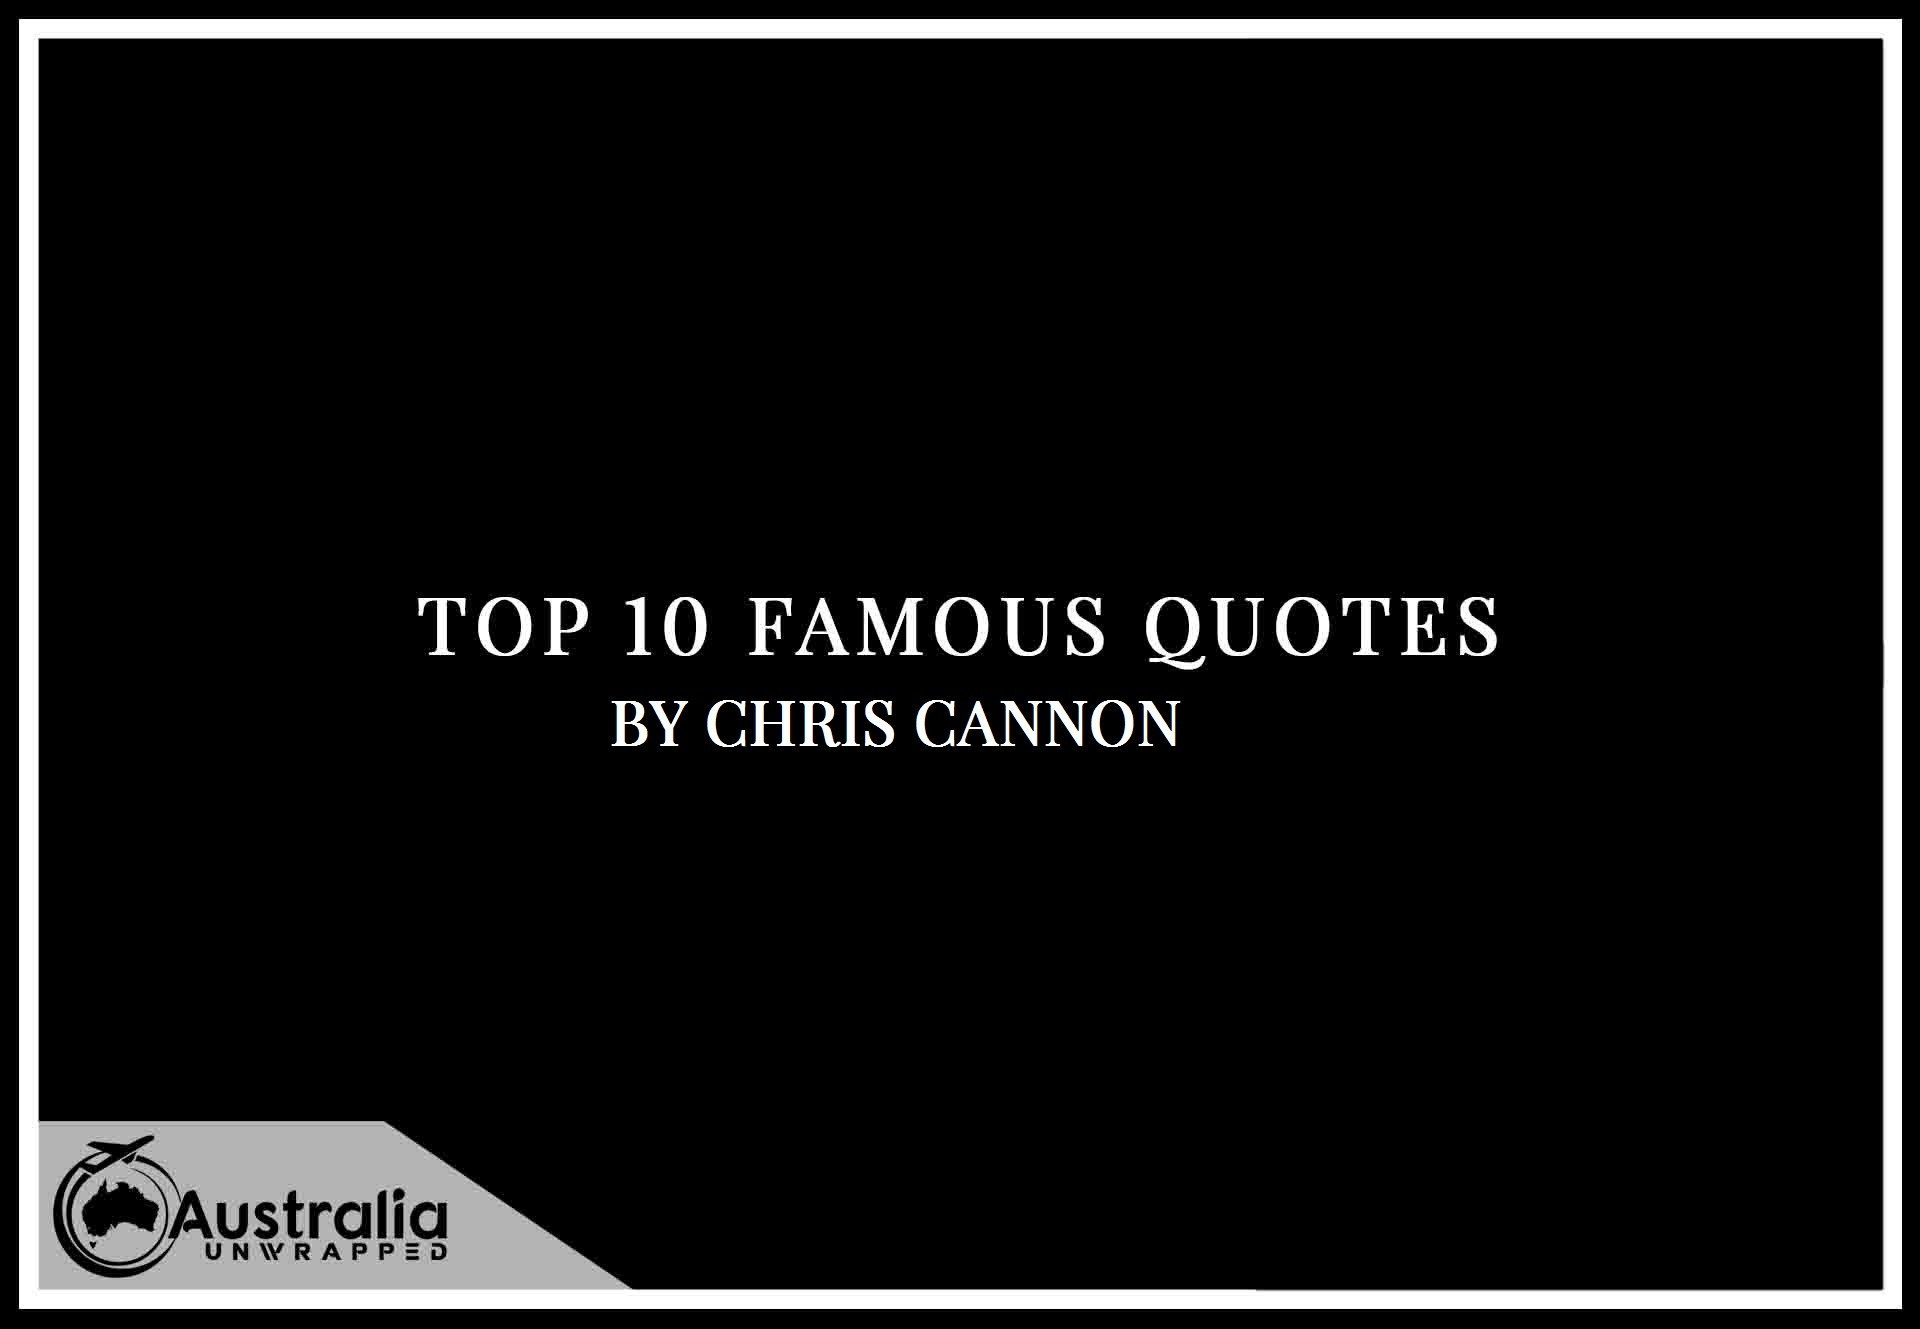 Chris Cannon's Top 10 Popular and Famous Quotes